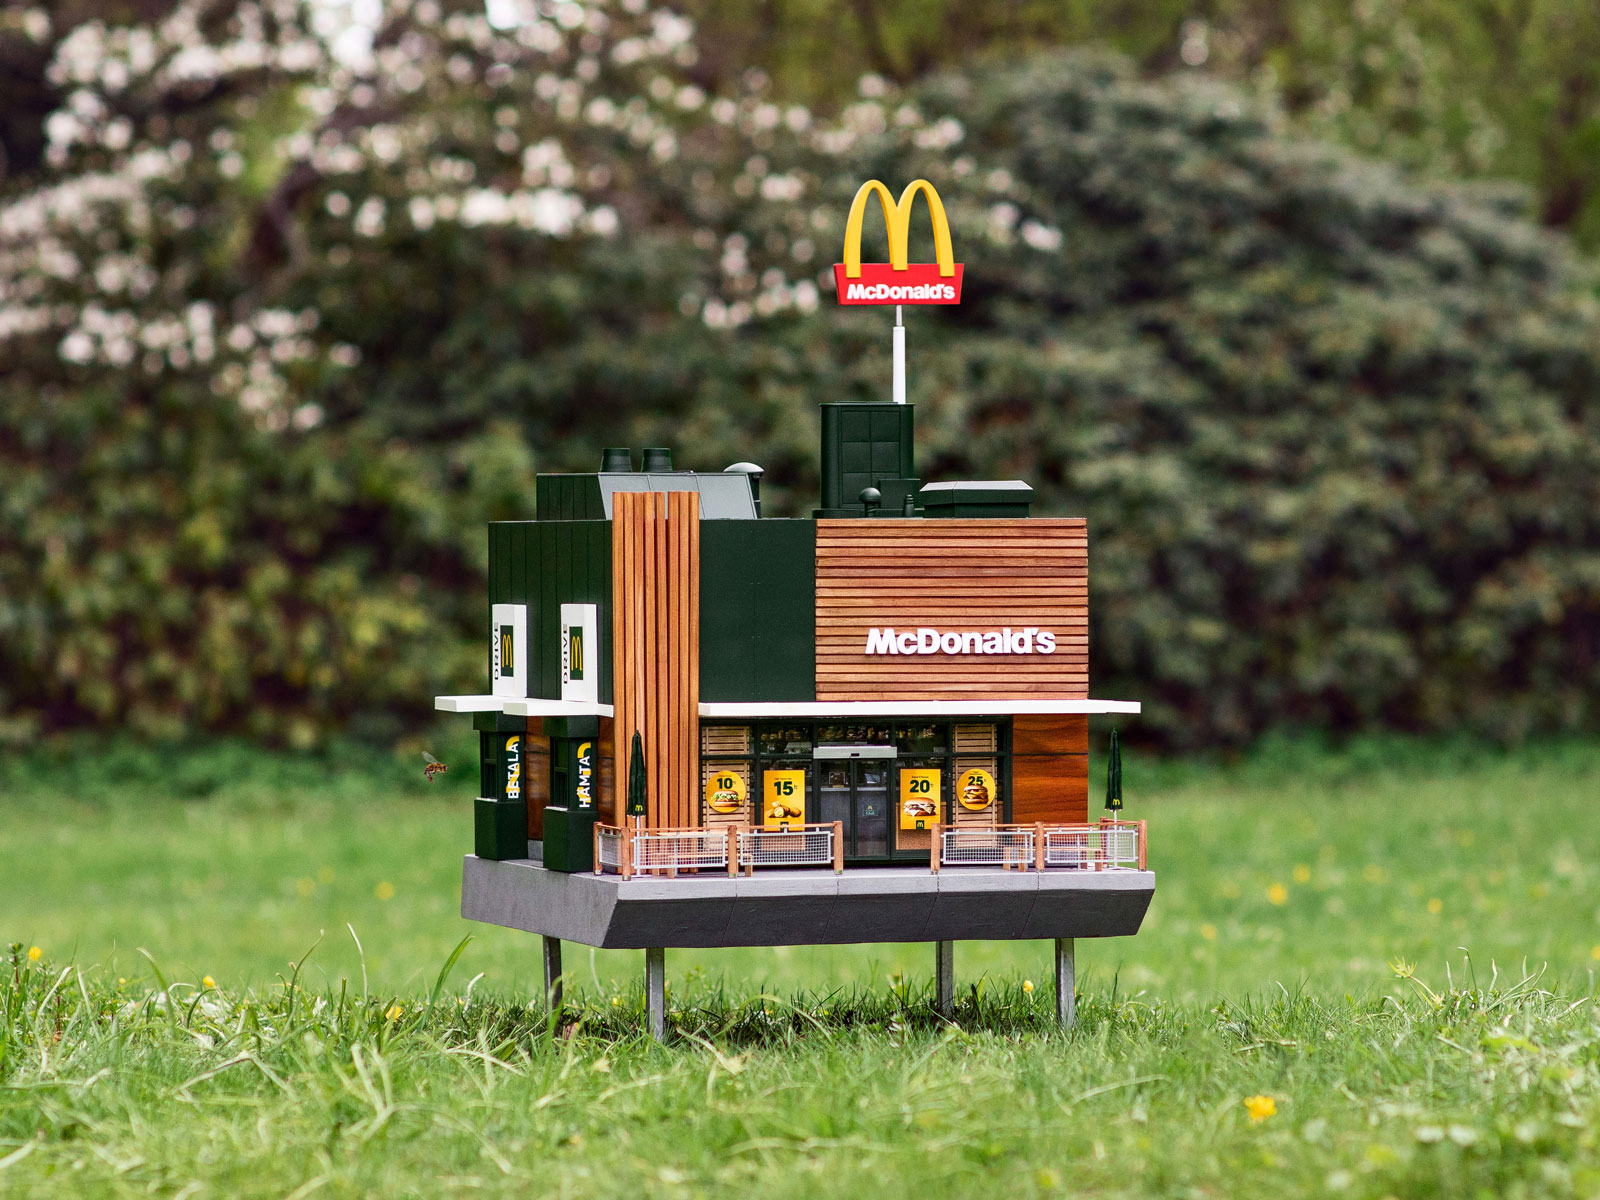 The 'World's Smallest McDonald's' Is Now Open — to Bees